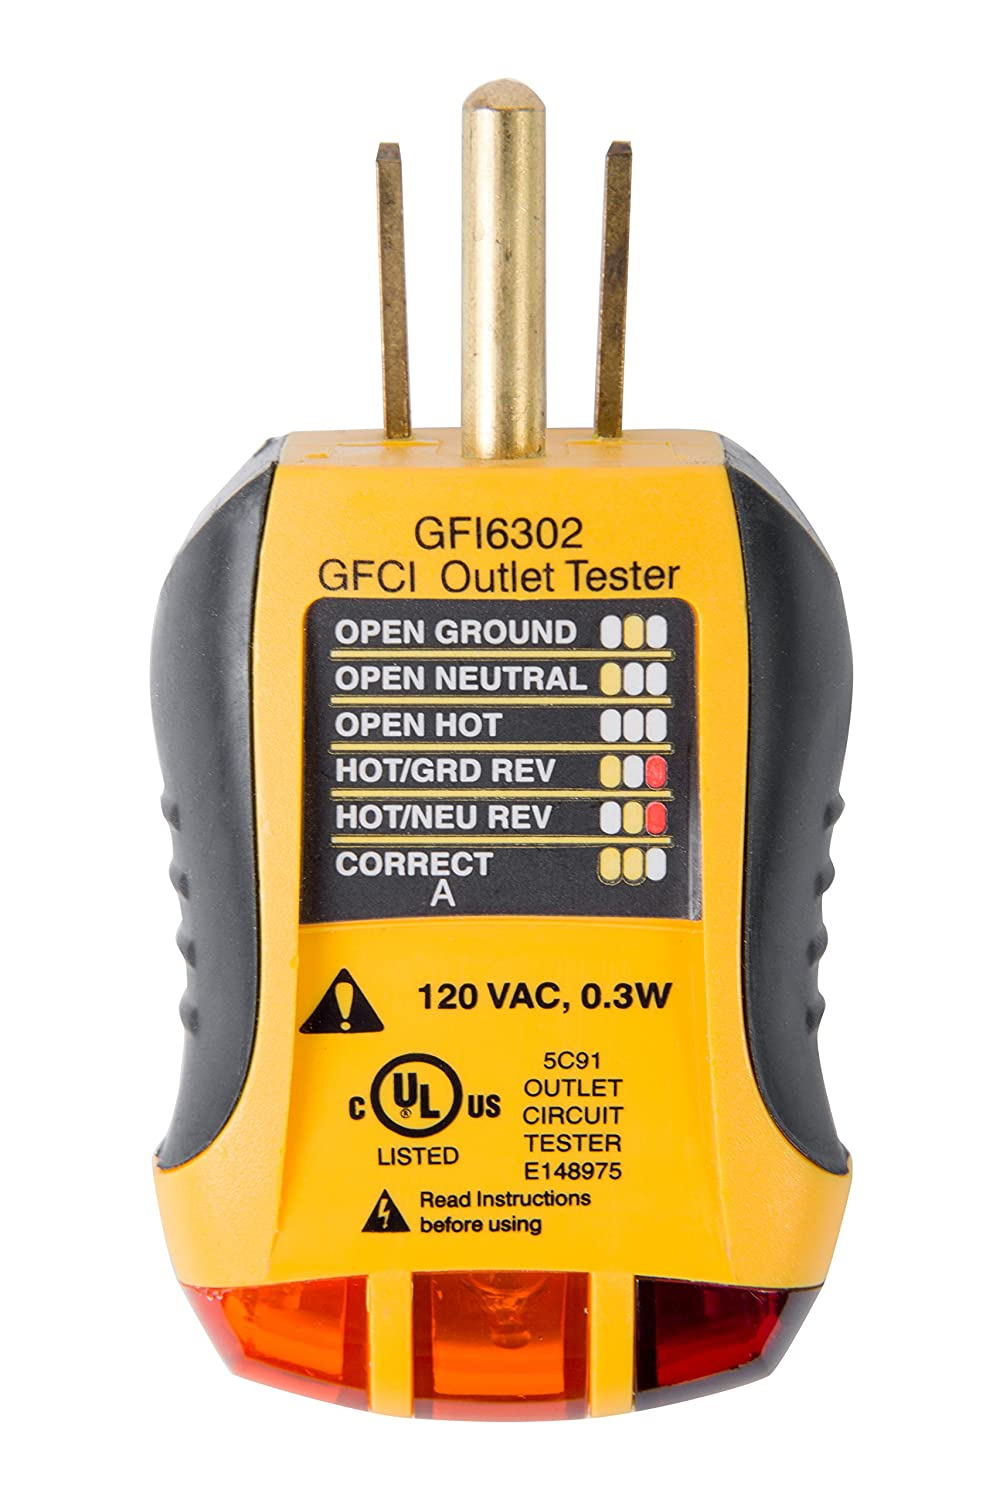 Sperry Instruments Gfi6302 Gfci Outlet Receptacle Tester Standard House Wiring Open Ground 120v Ac Outlets 7 Visual Indication Legend Home Professional Use